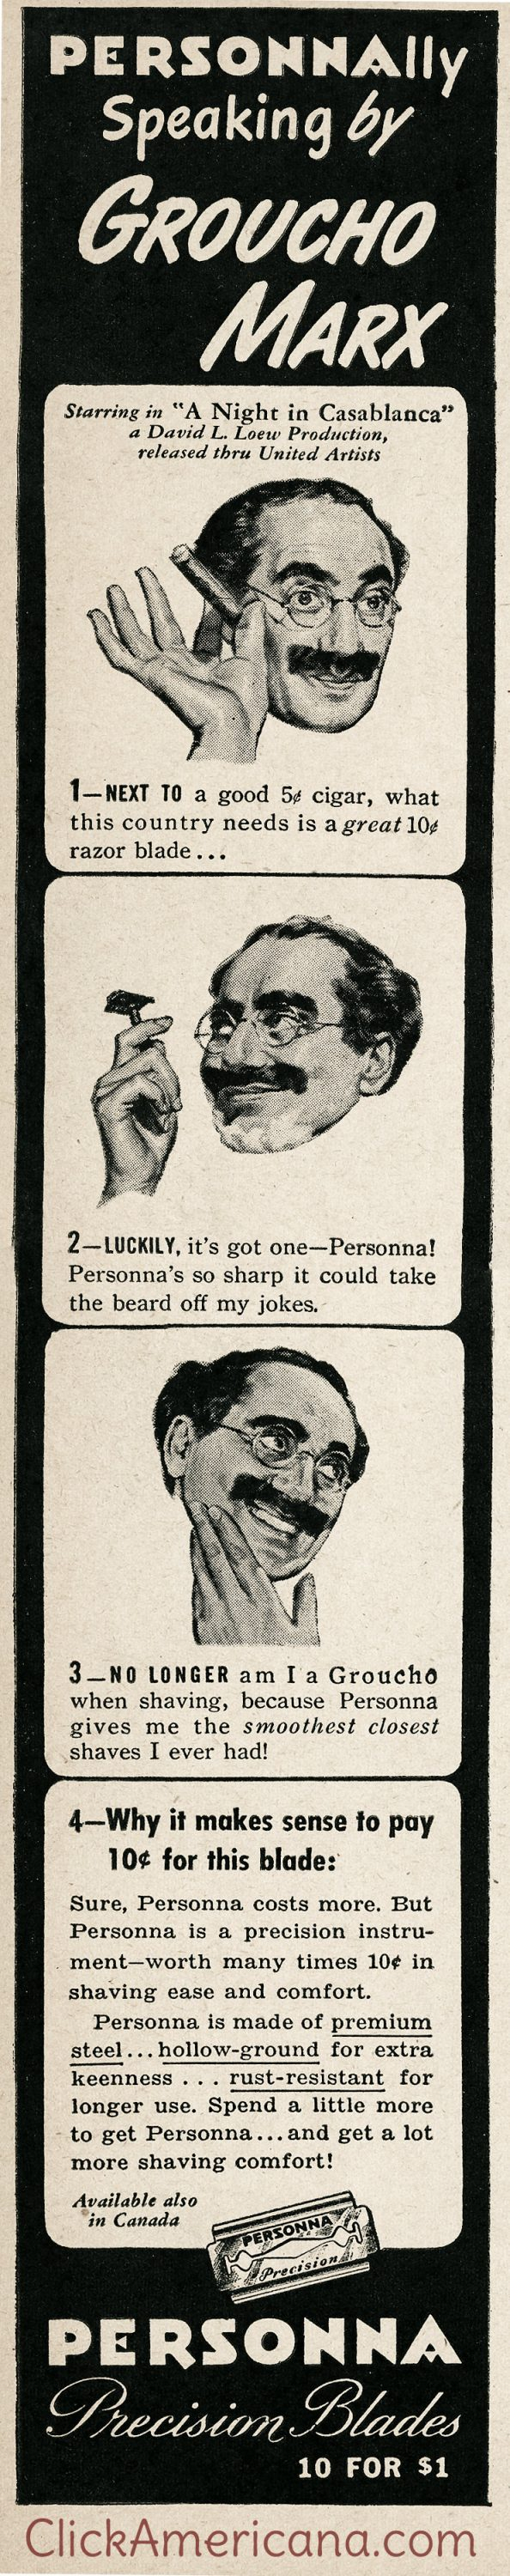 Groucho Marx for Personna blades (1946)